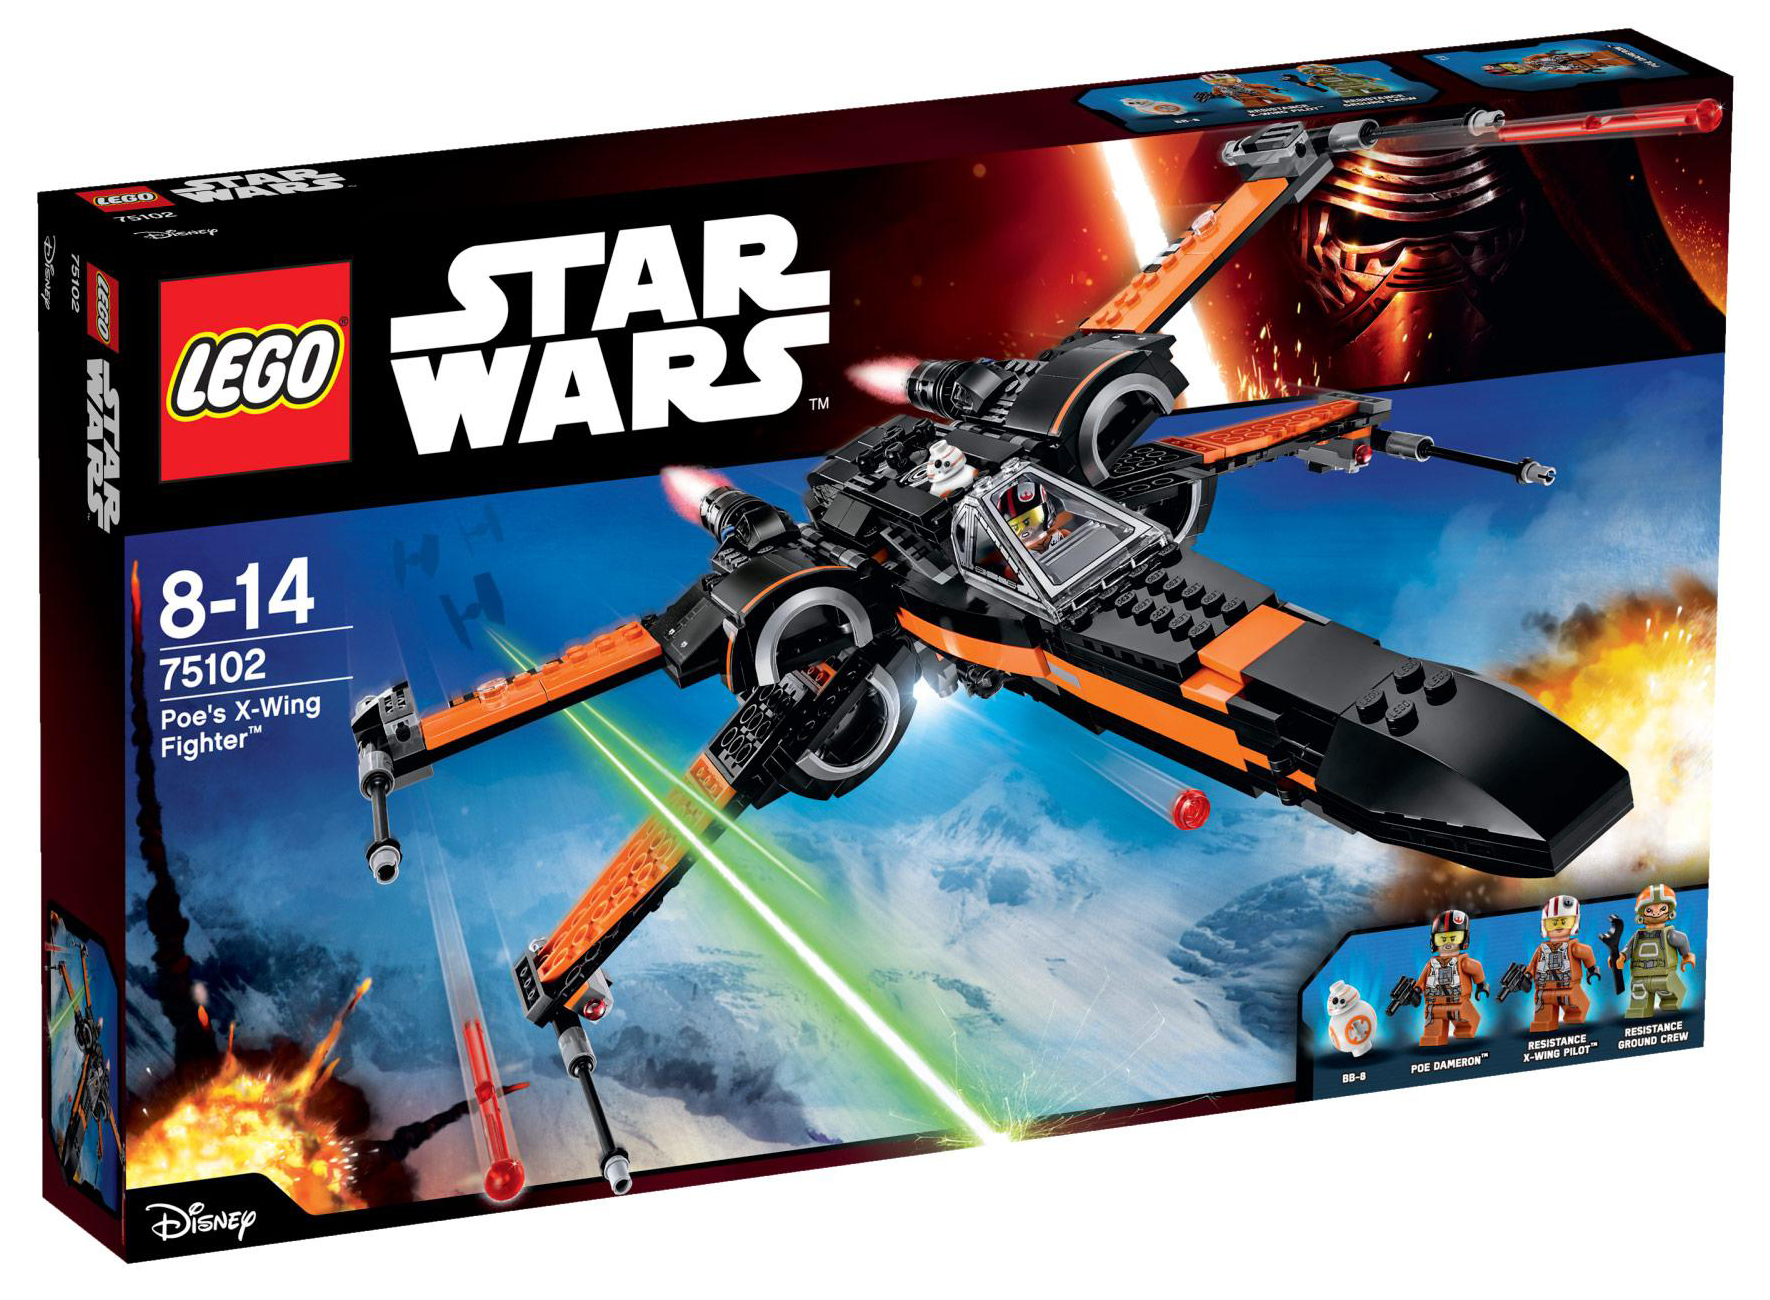 LEGO Star Wars 75102 - Le X-Wing Fighter de Poe